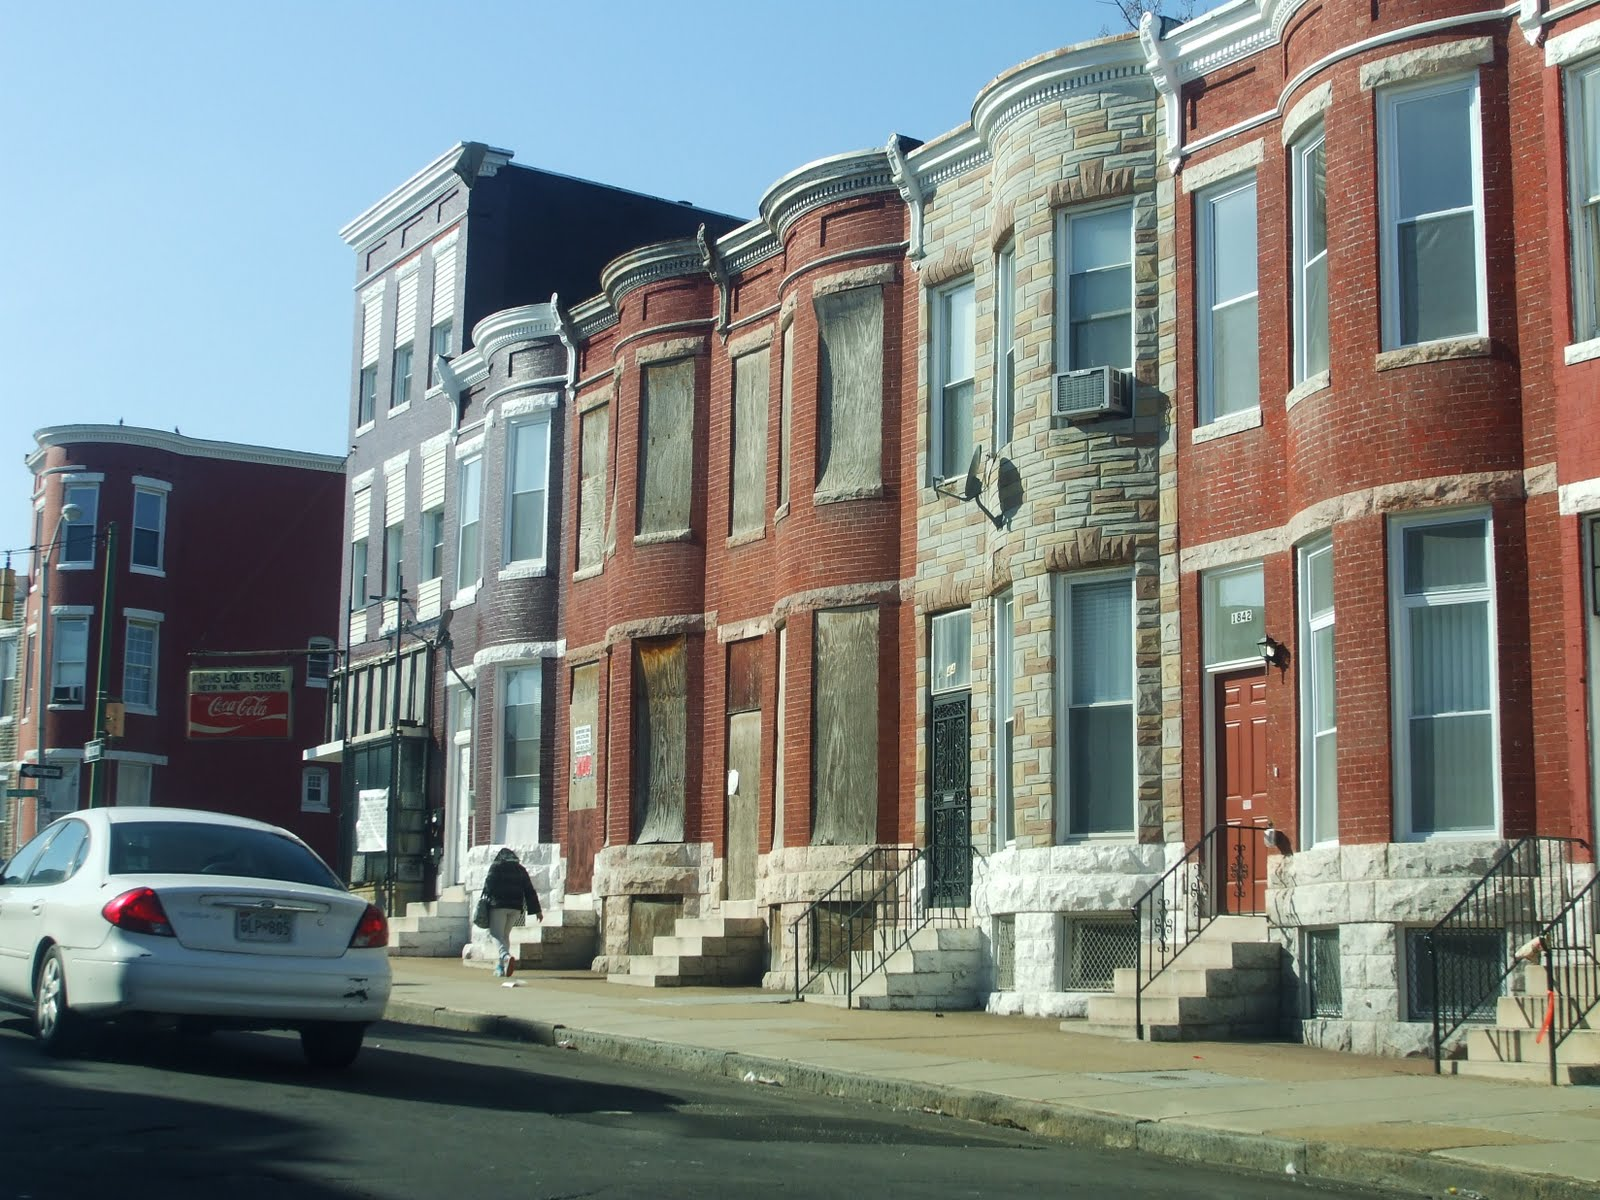 park dc fort sectional section apartments washington housing chaplin in